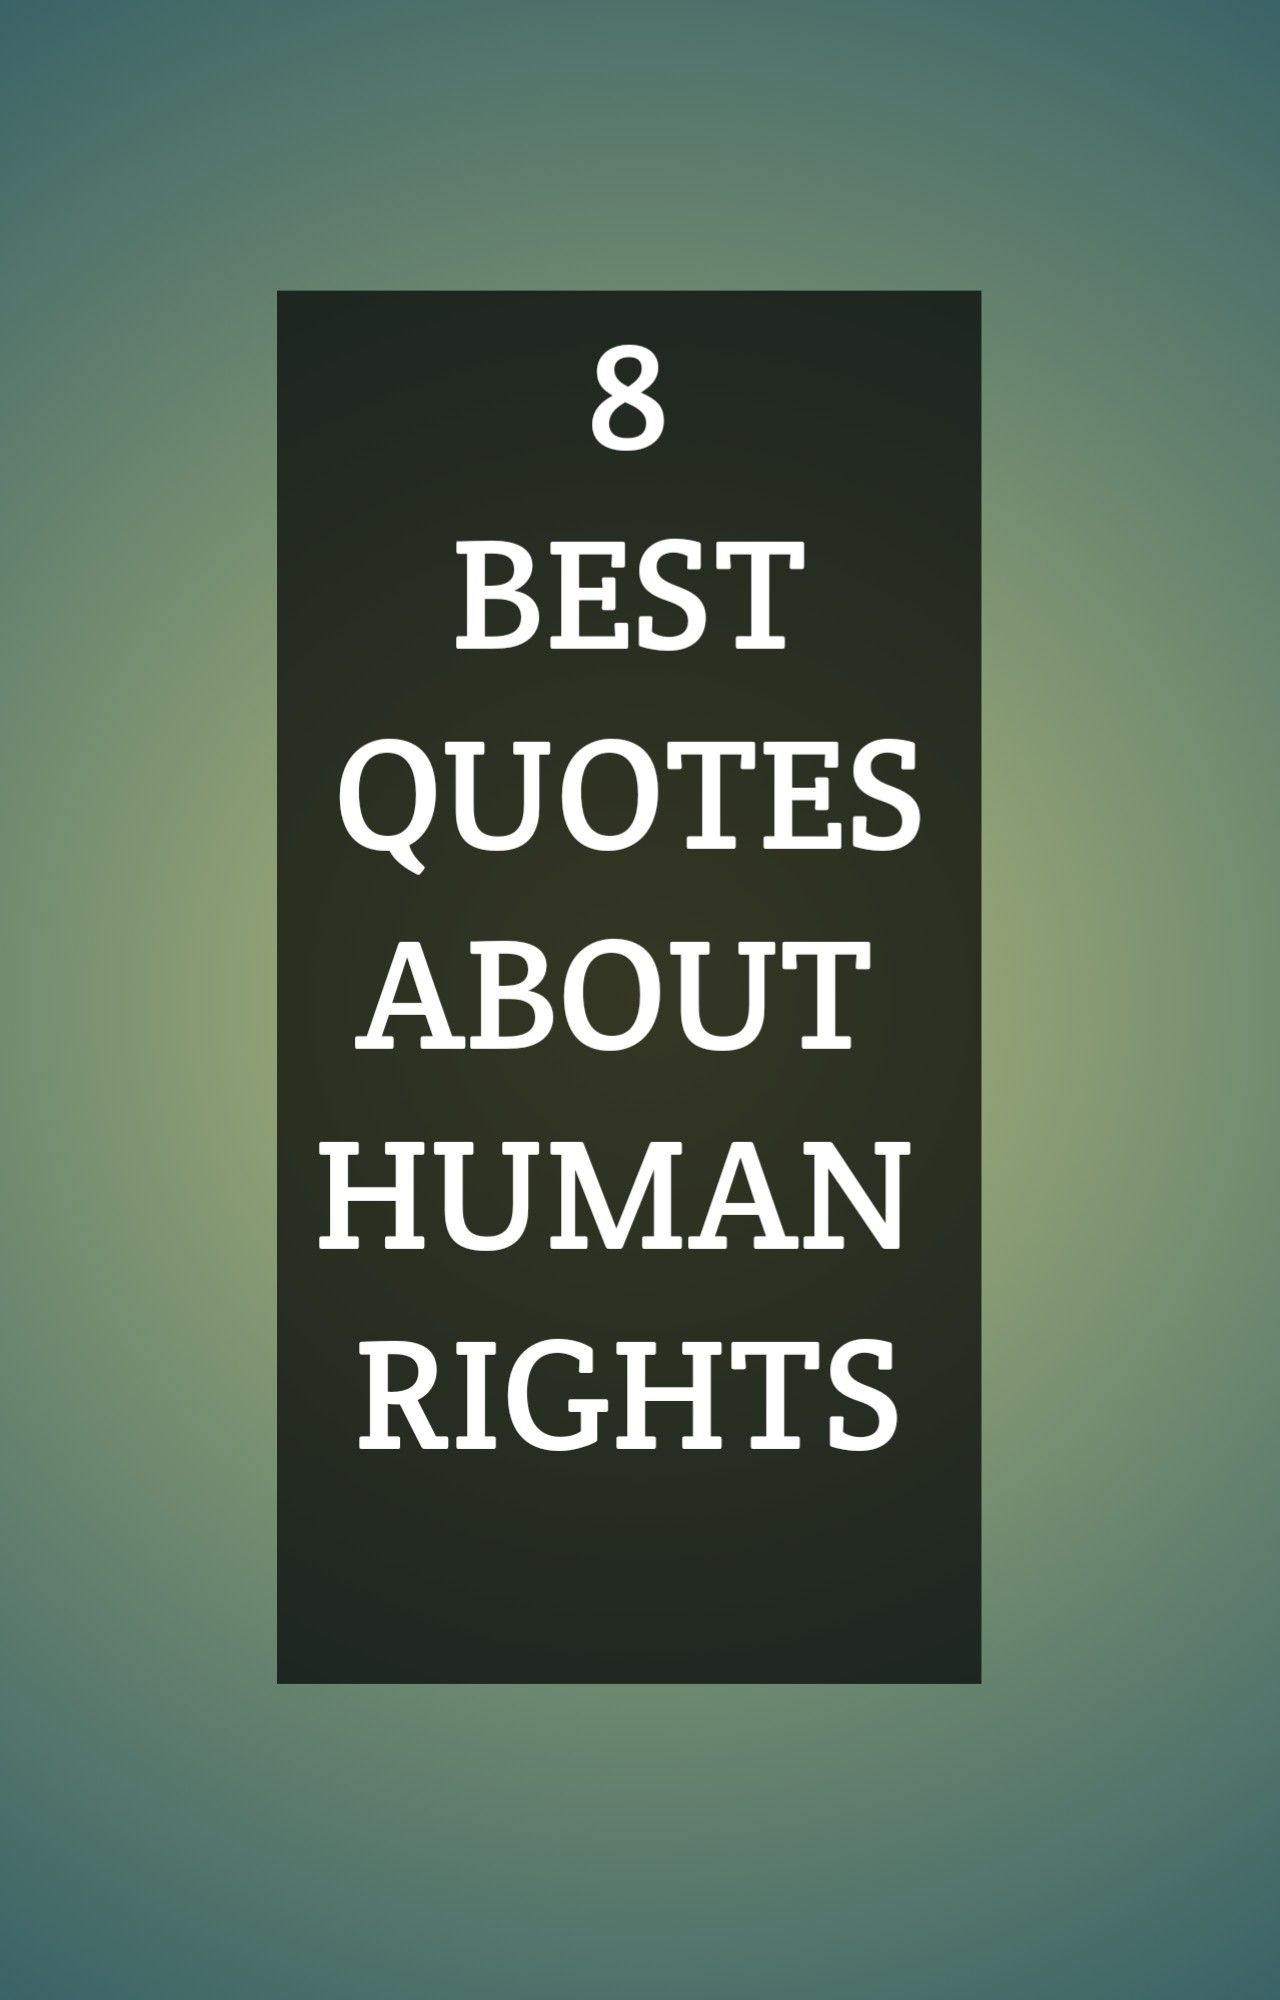 8 Best Quotes About Human Rights Best Quotes Best Quotes Of All Time Quotes